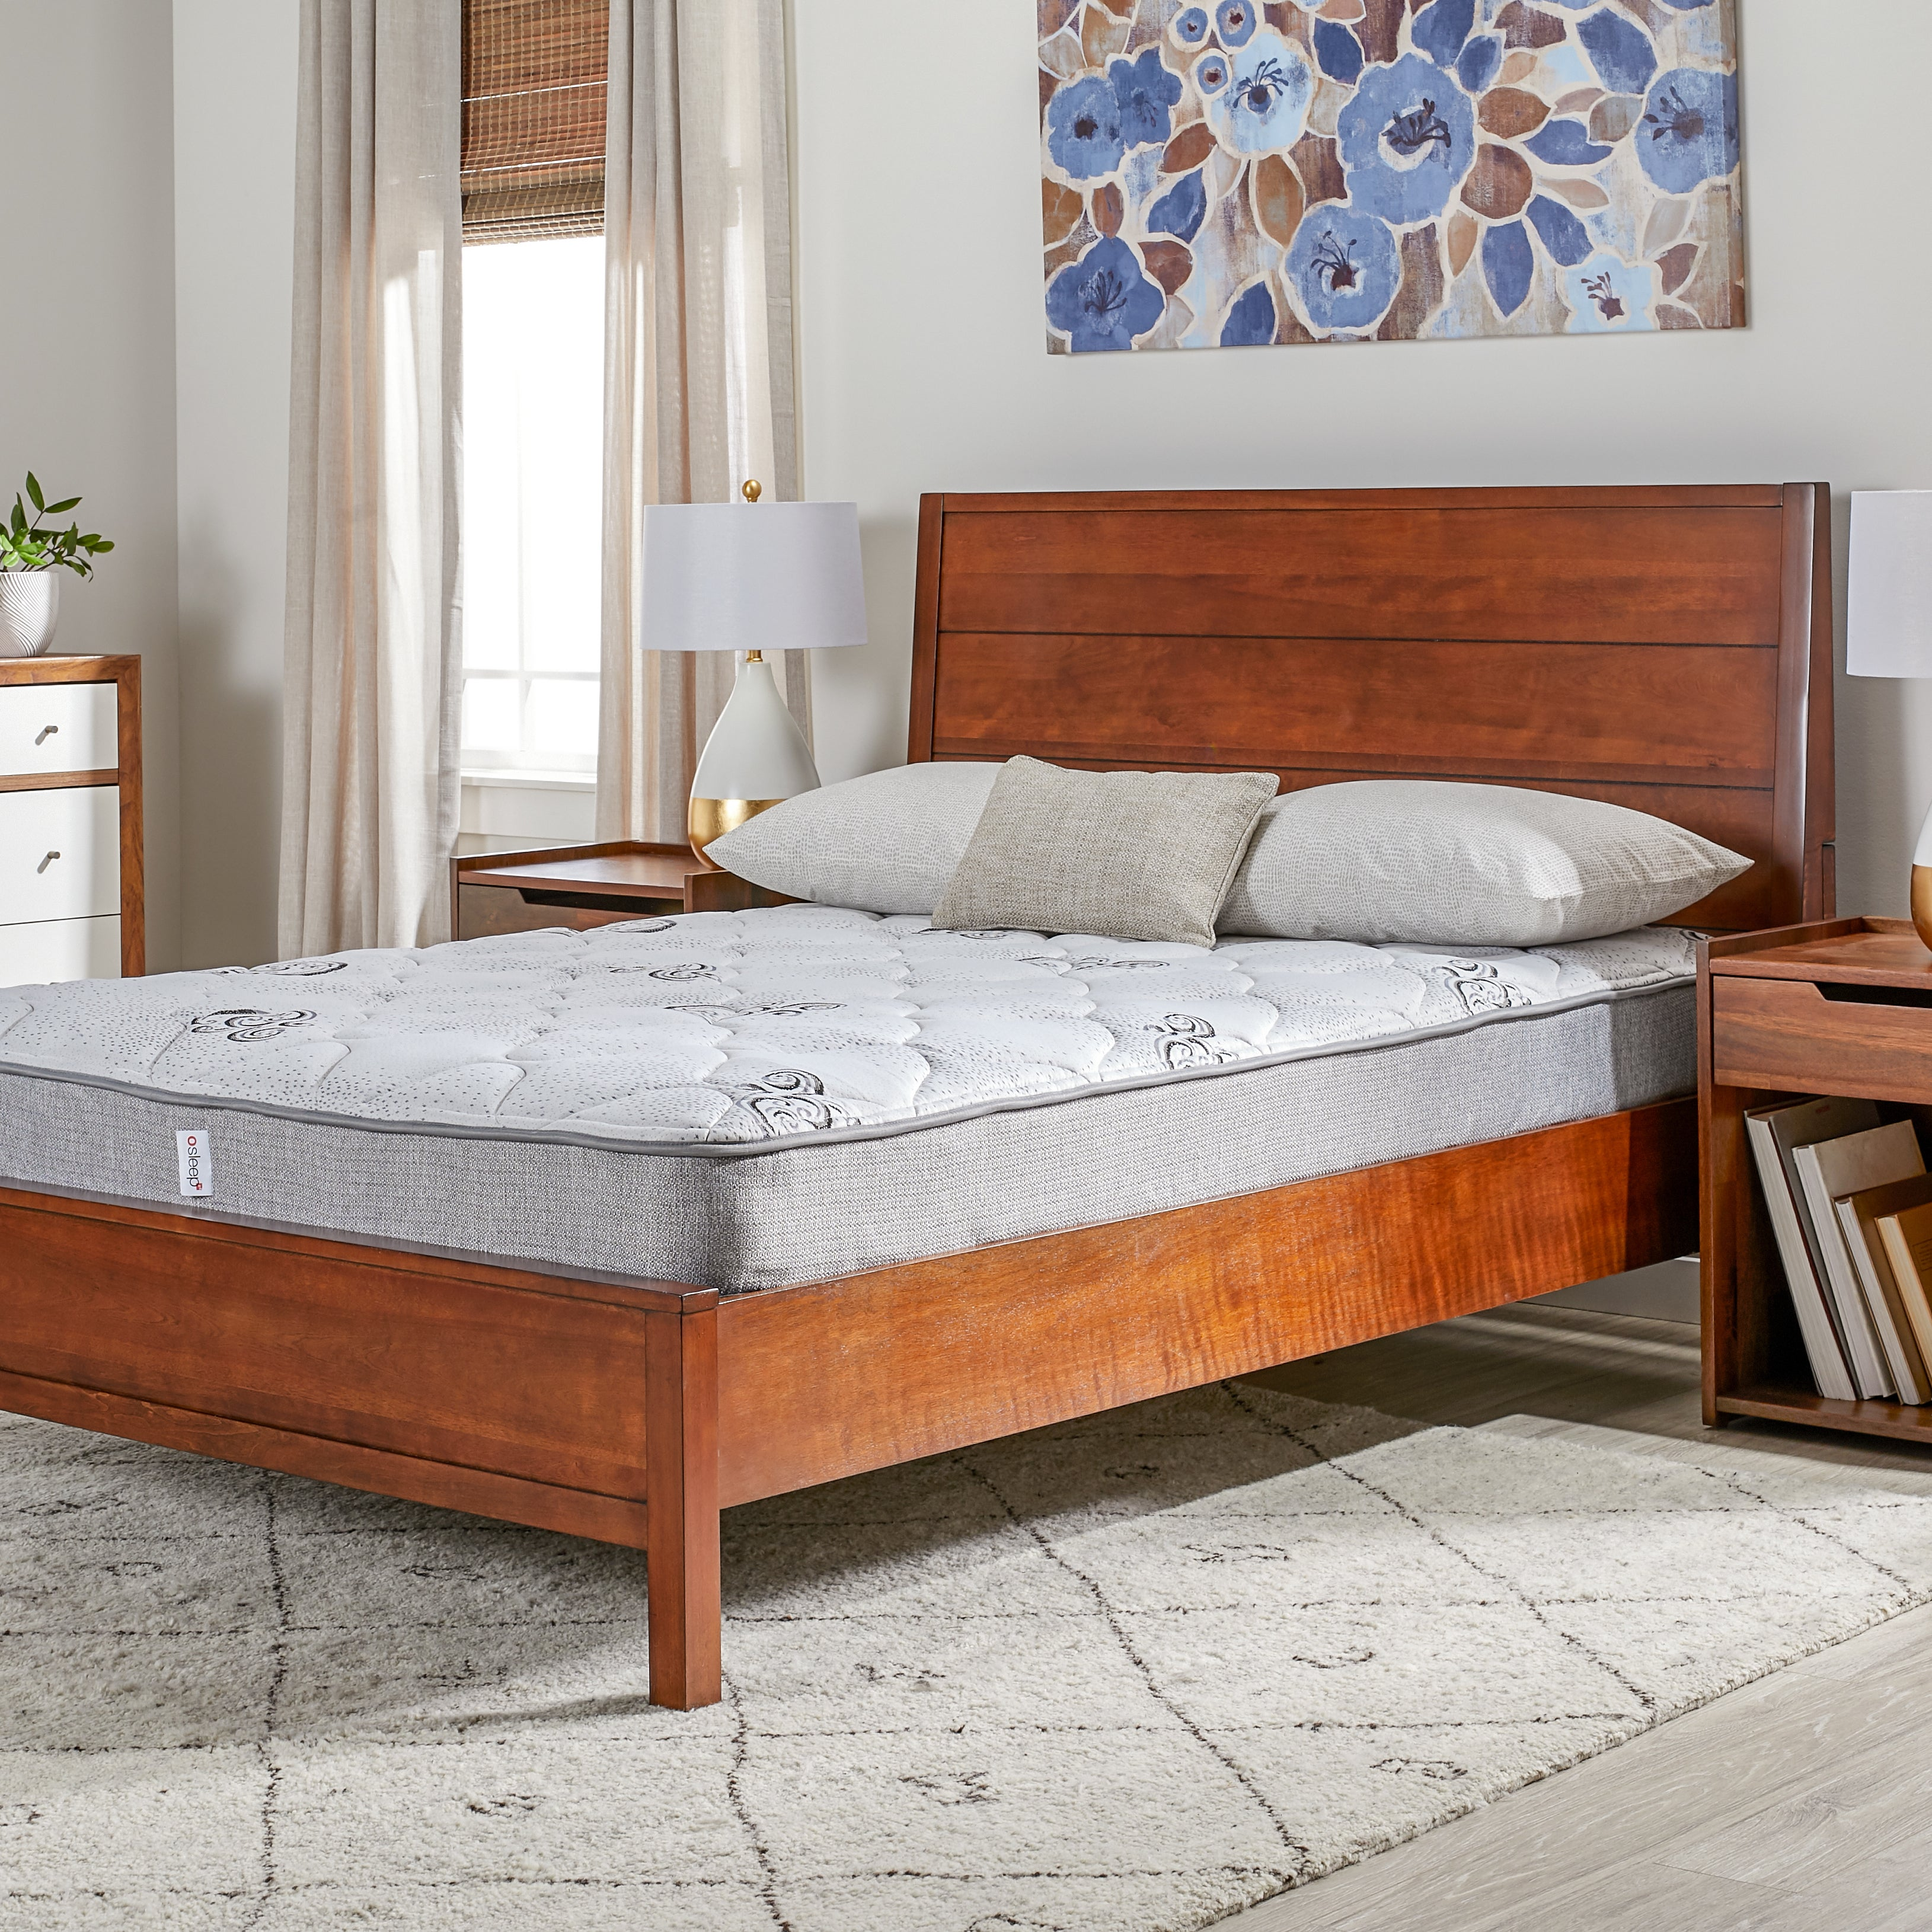 Wolf Sleep Comfort Quilt Twin-size Mattress Bed in a Box ...